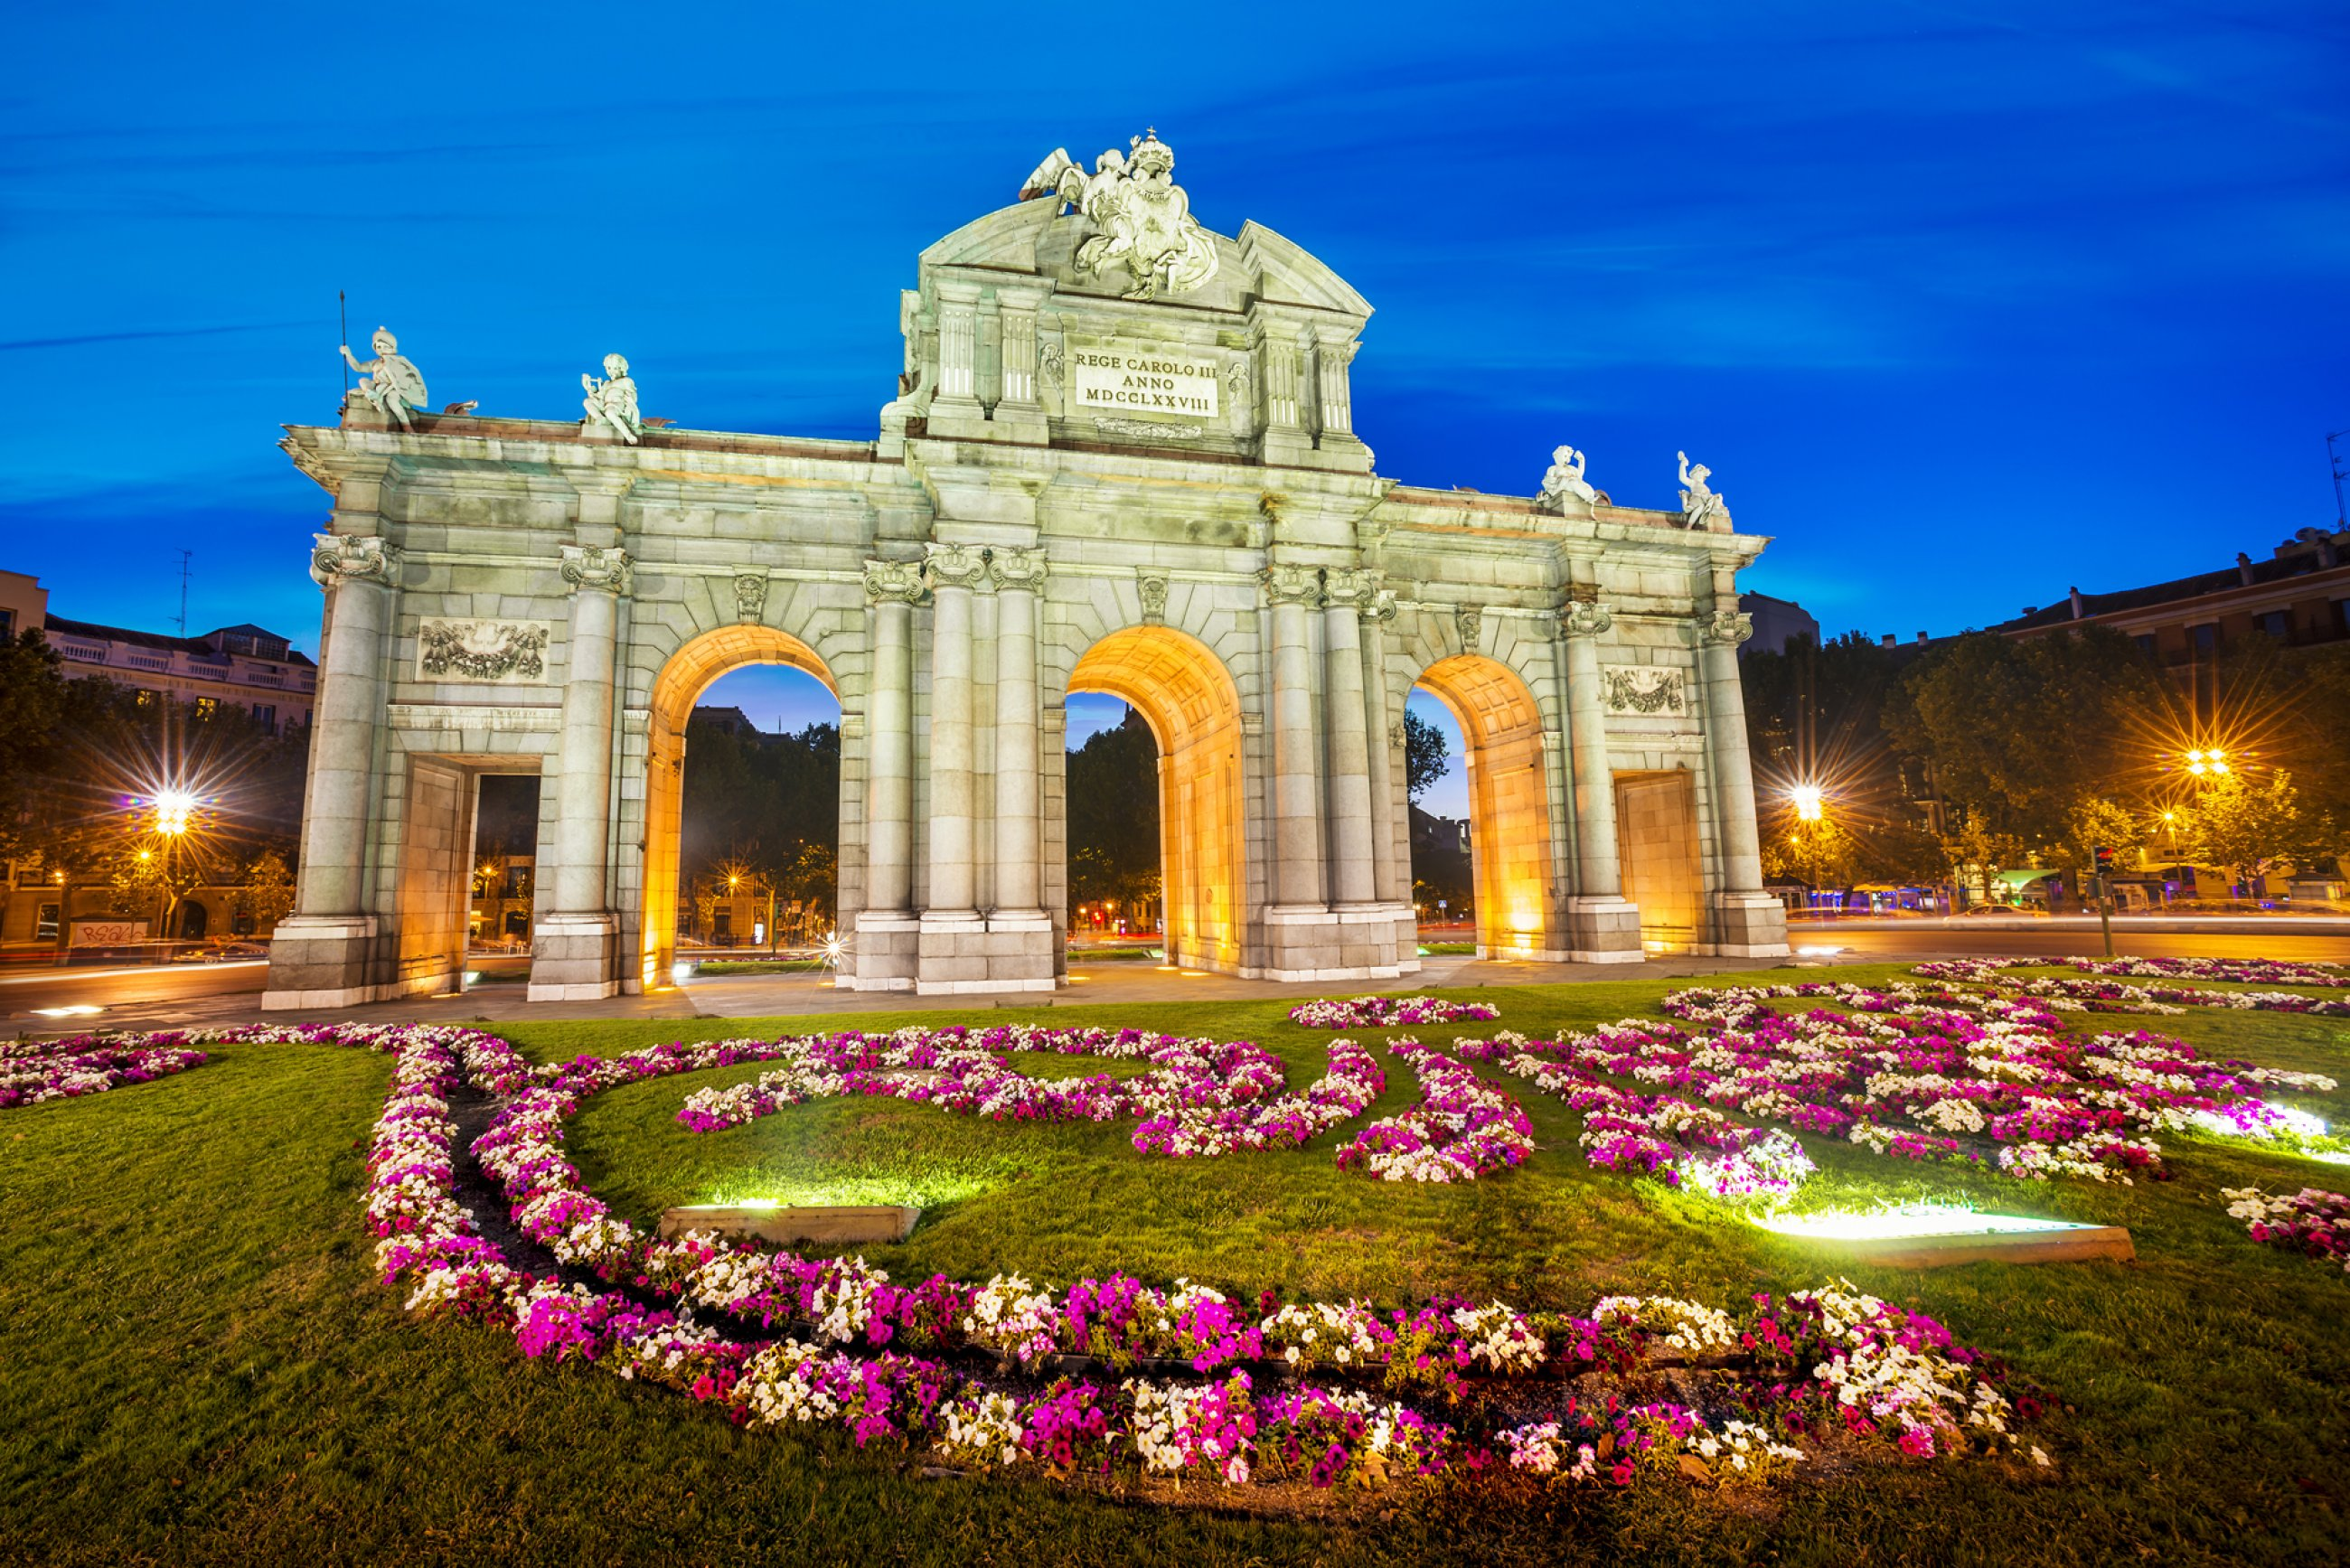 https://bubo.sk/uploads/galleries/7351/spaneilsko-famous-puerta-de-alcala-madrid-cibeles-district.jpg